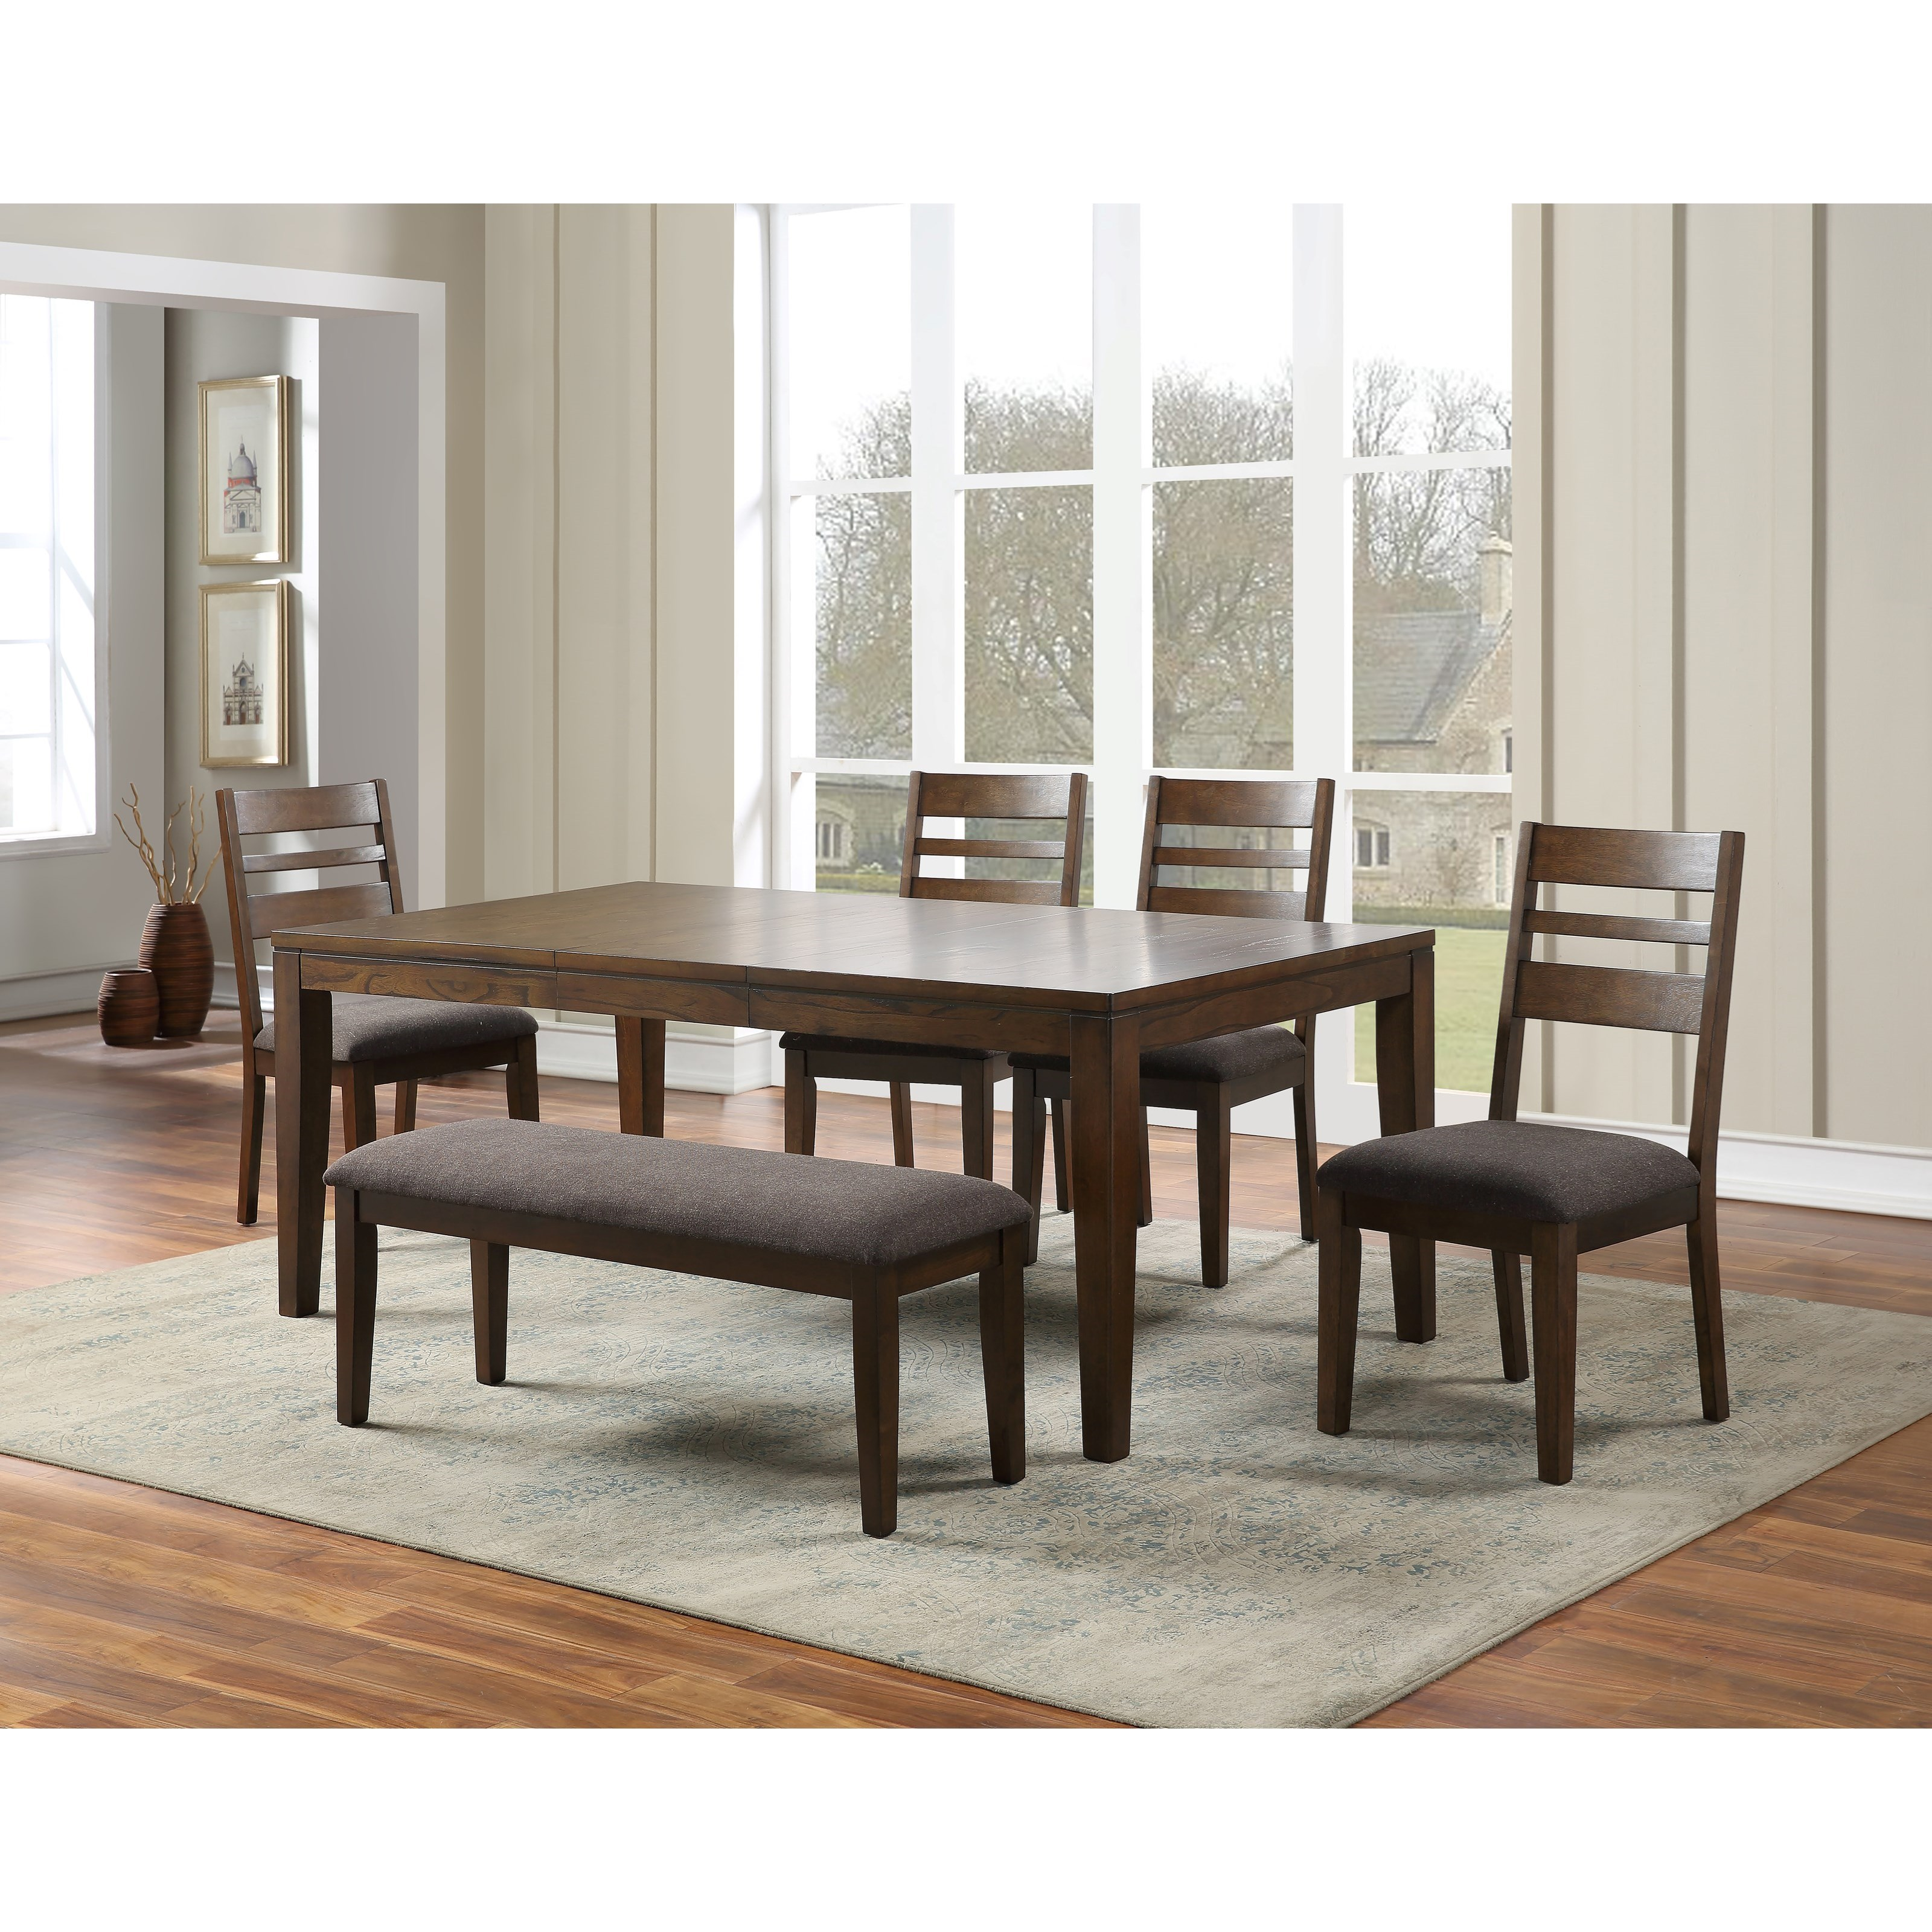 Stratford Table & Chair Set with Bench by Steve Silver at Northeast Factory Direct